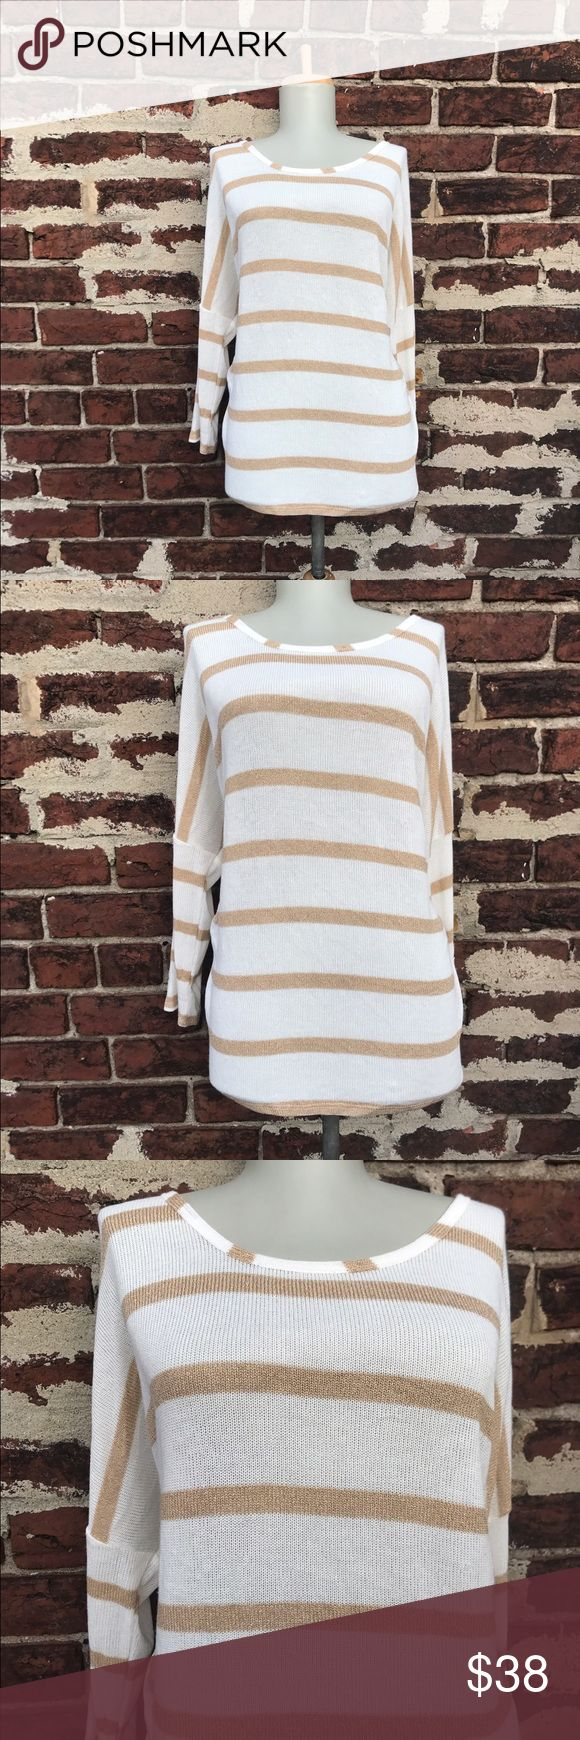 NWT Papermoon XL Stitch Fix Jamie Knit Sweater Top You're looking at a beautiful knit top / sweater by Papermoon (for Stitch Fix)! Ivory with metallic gold striped throughout. Slouchy dolman sleeves.  Size XL    Polyester / Rayon / Metallic / Spandex Made in USA   New with tags Papermoon Tops